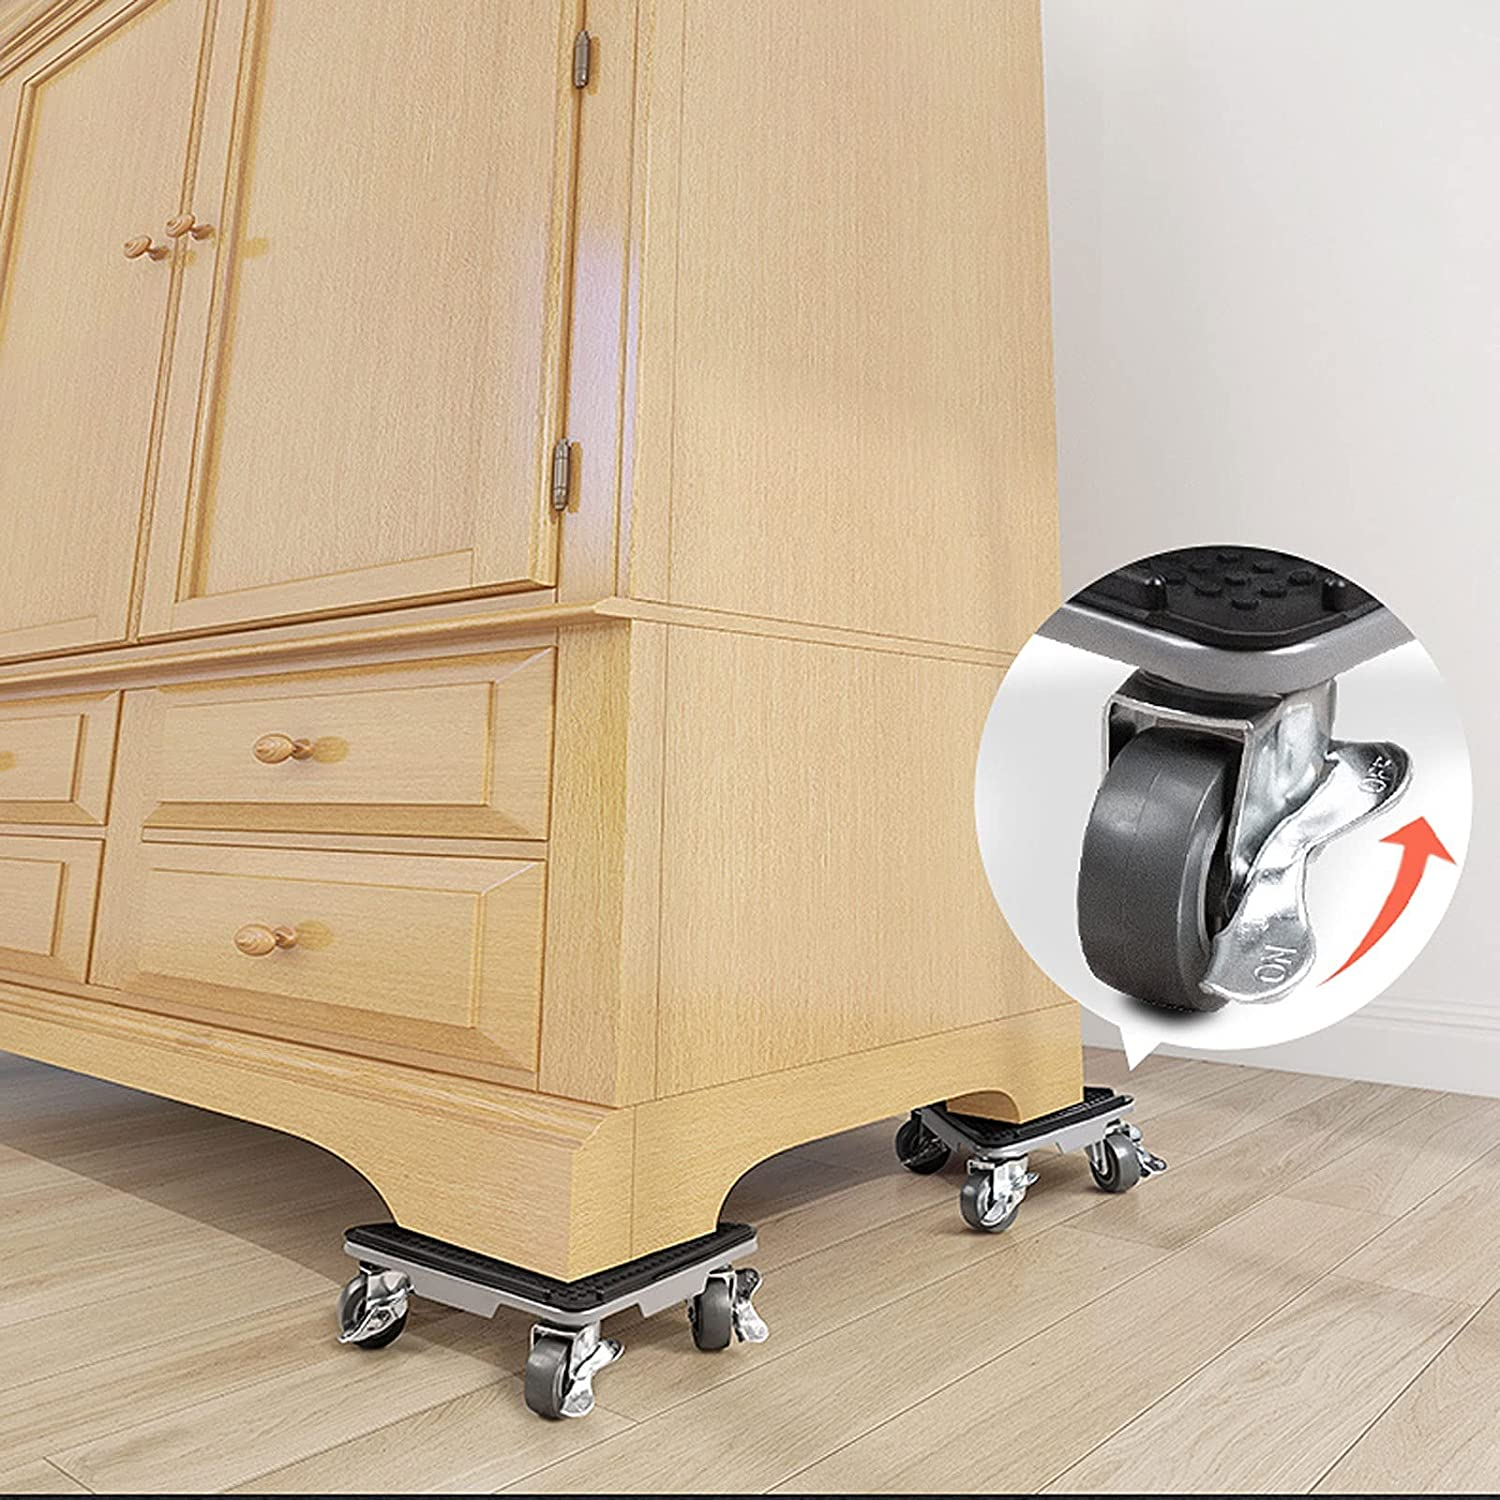 Easy Furniture Lifter Mover Tool Set w Sliders Movers Complete Free Shipping 25% OFF